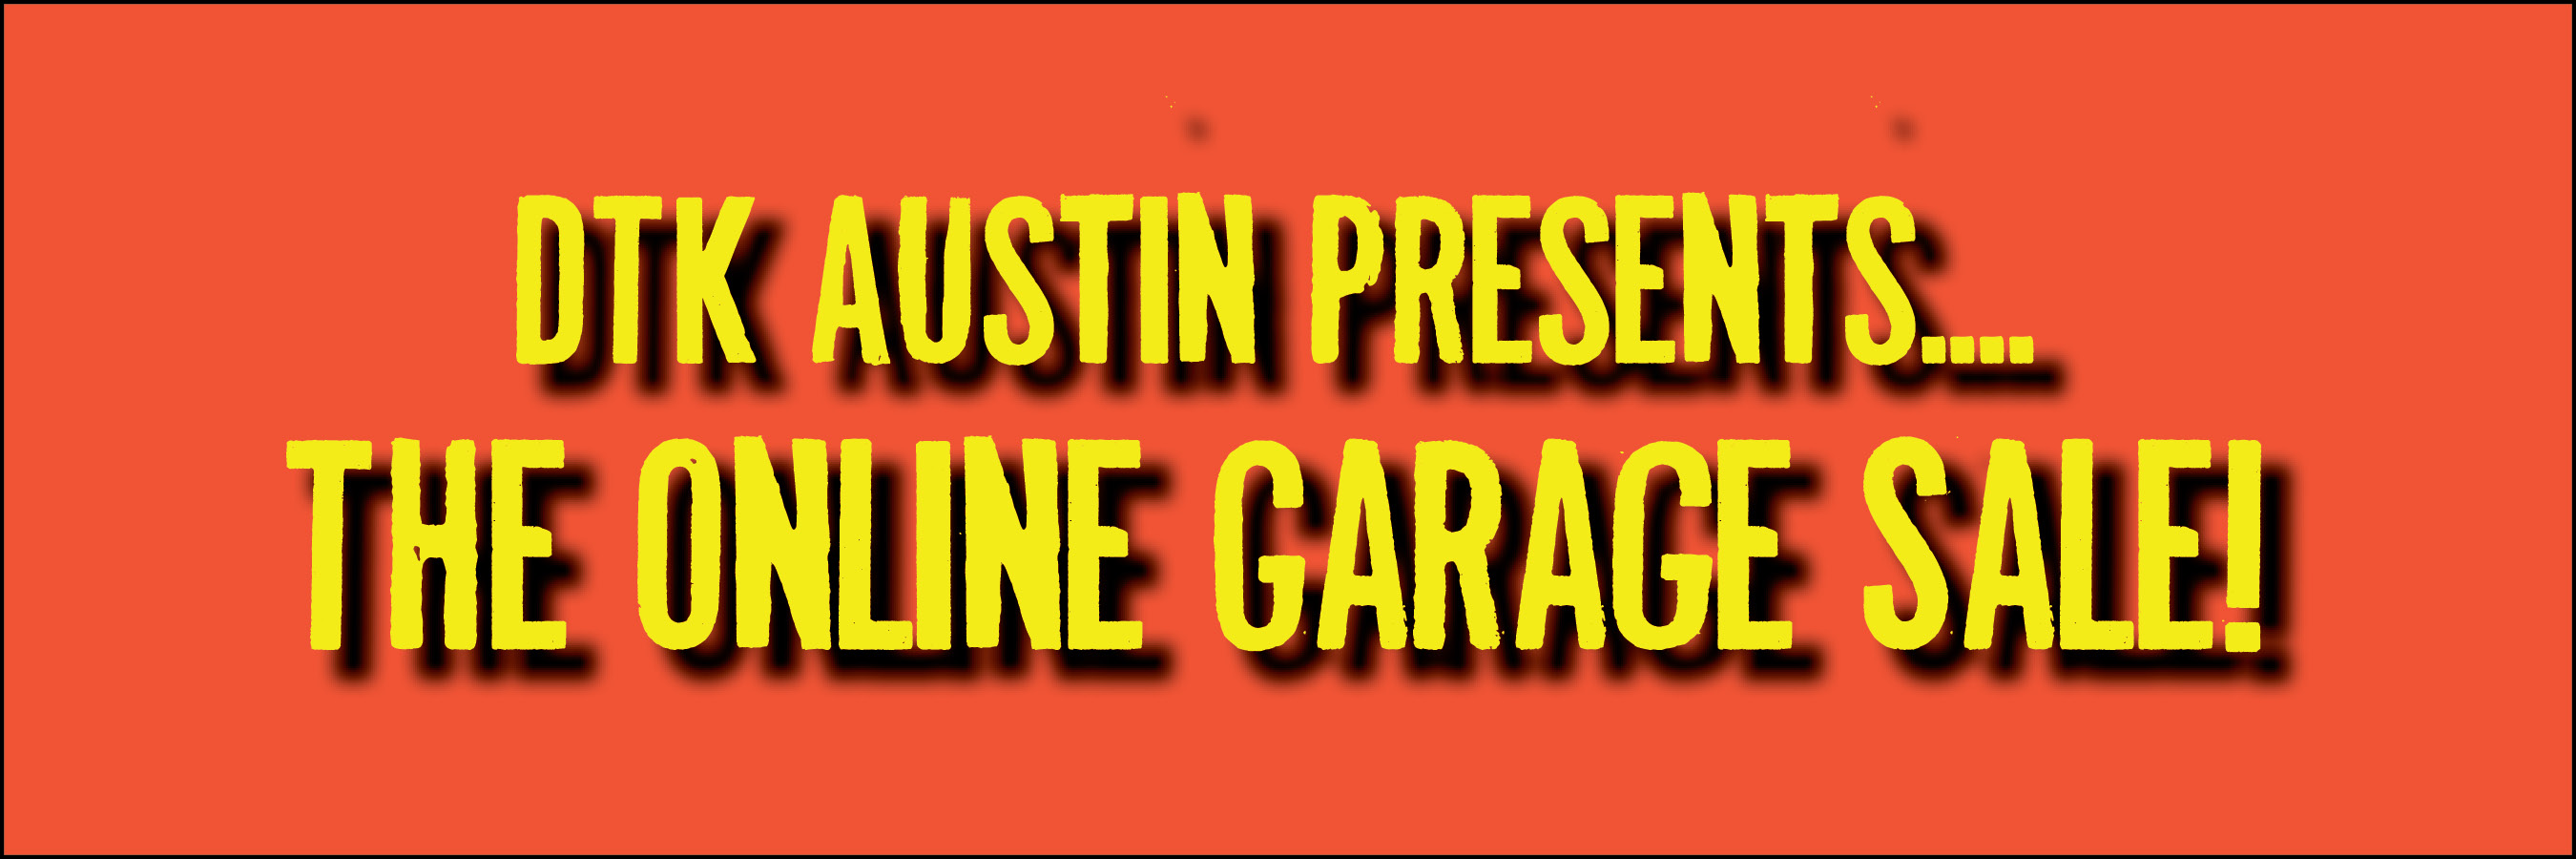 Online Garage Sale Dtk Austin Styling Make Your Own Beautiful  HD Wallpapers, Images Over 1000+ [ralydesign.ml]